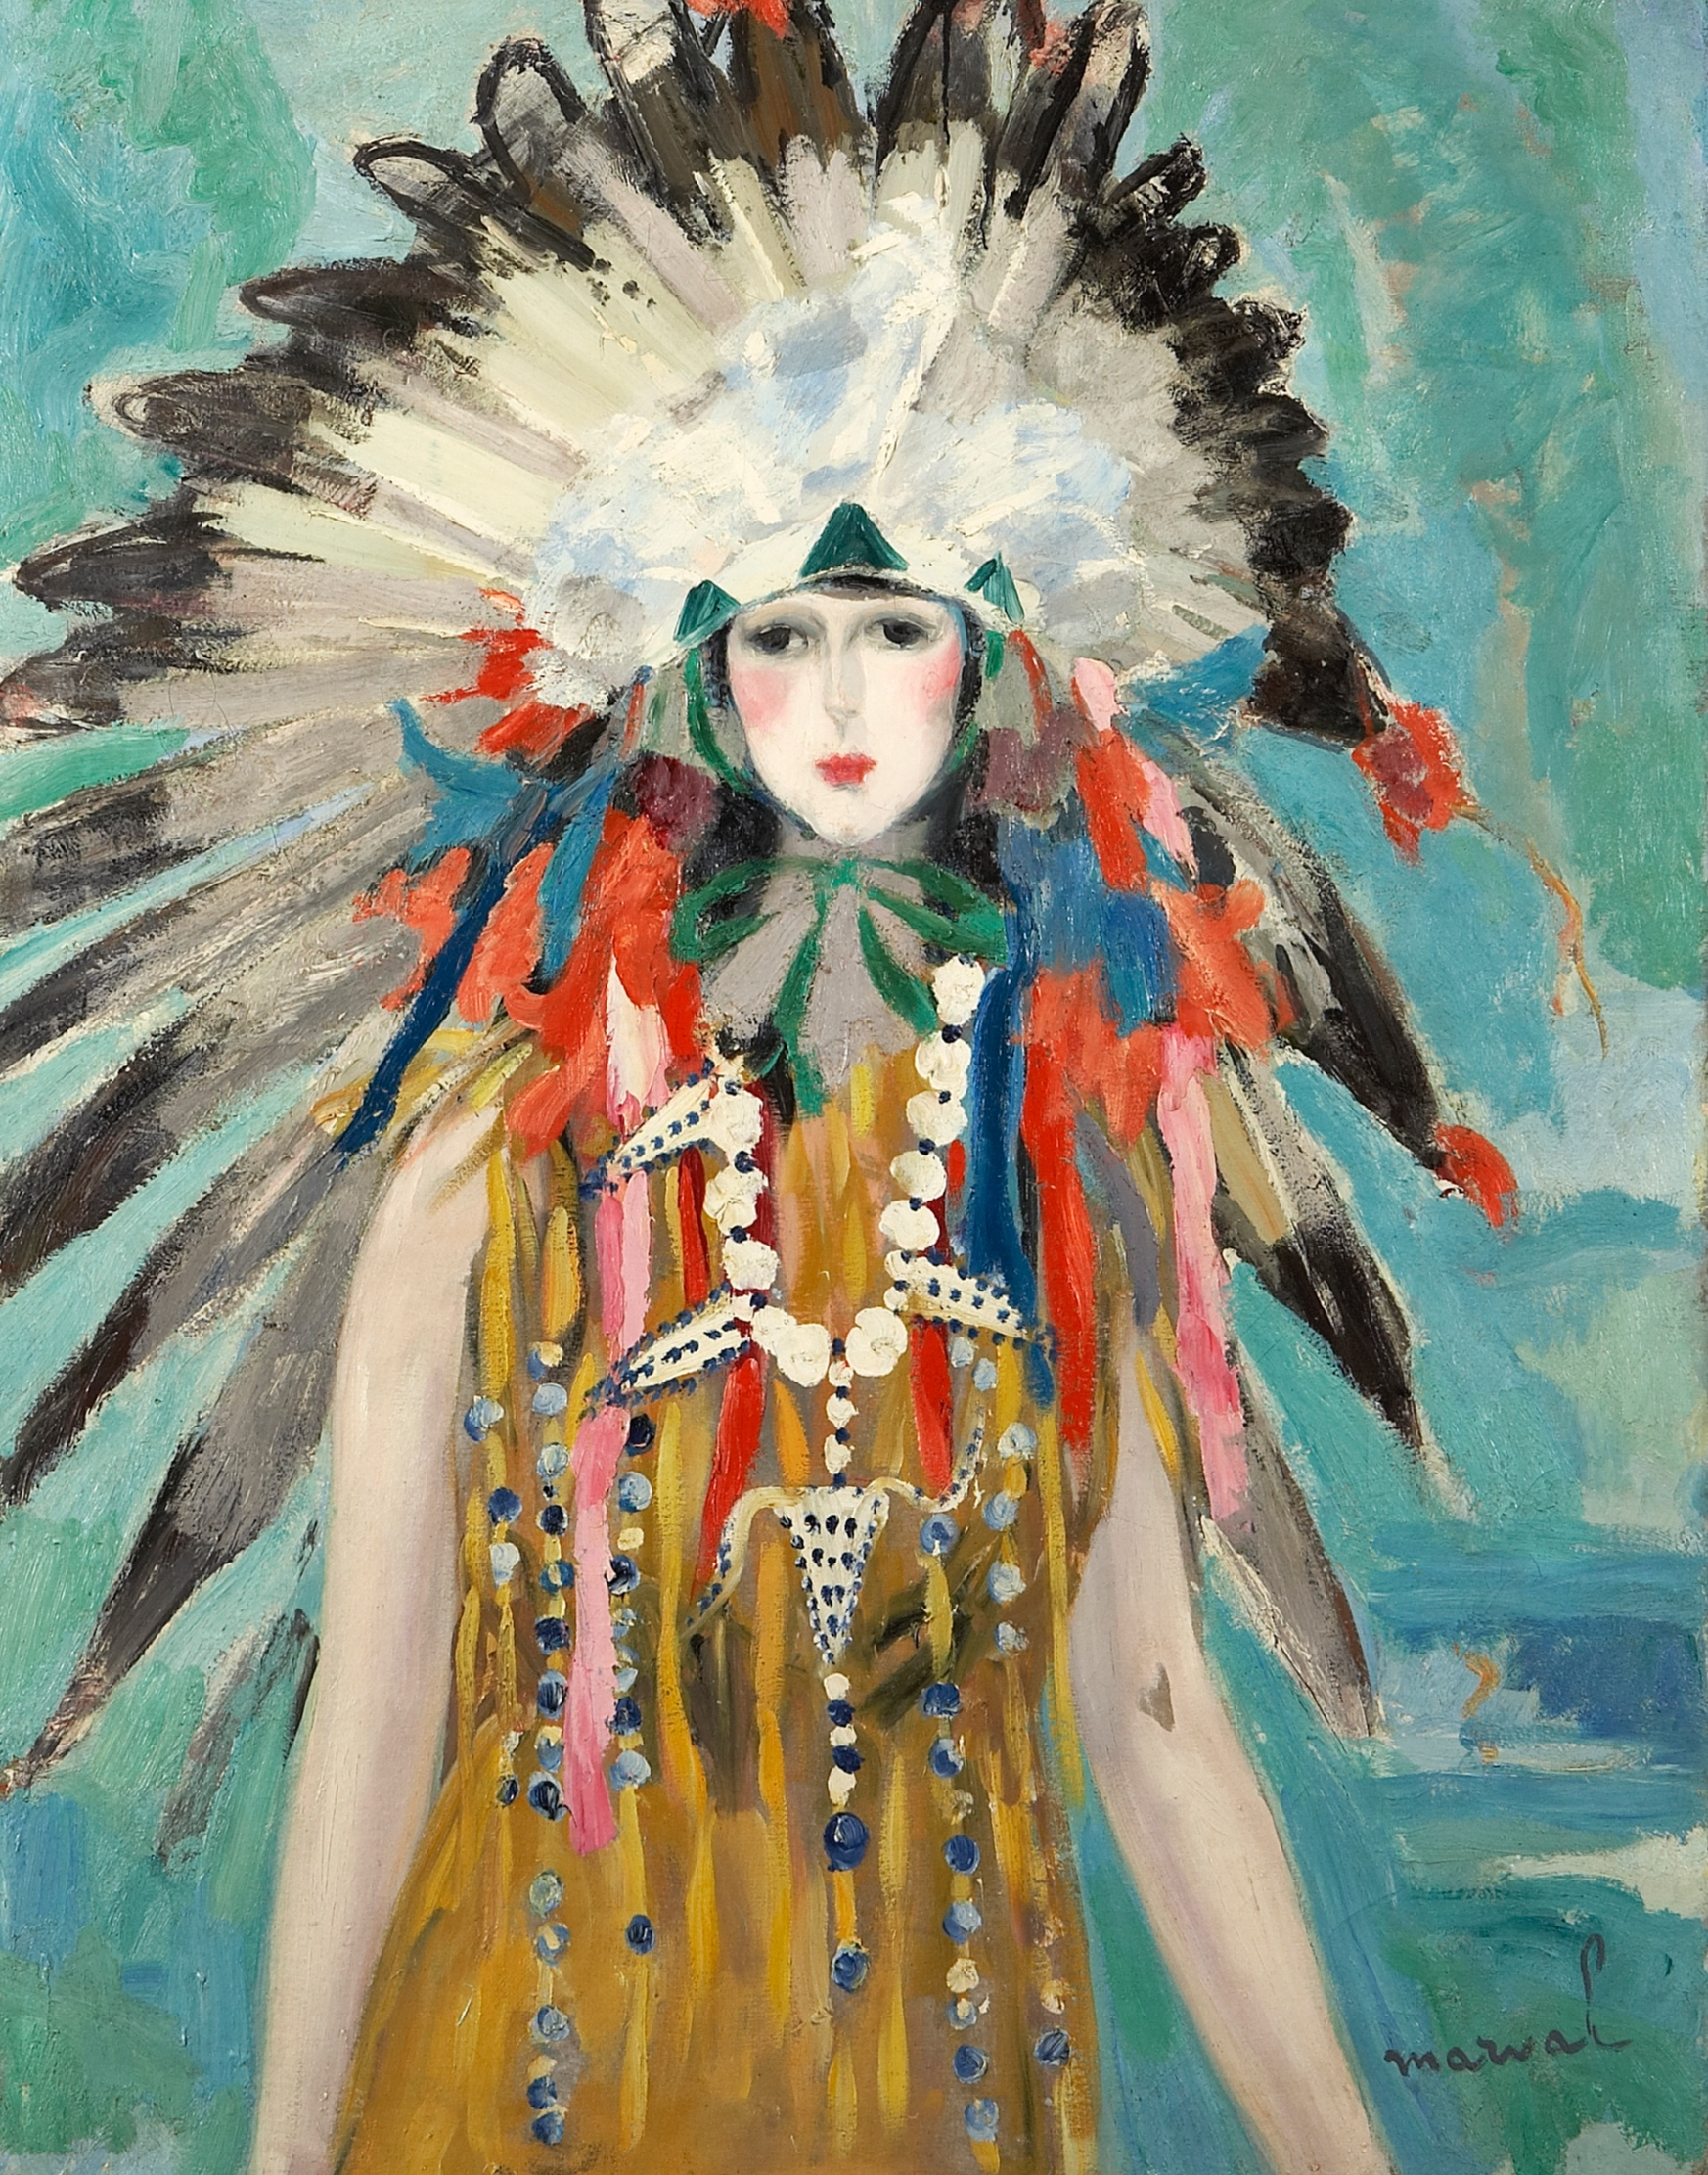 La Reine des Sioux, portrait of Madame G. Menier, Jacqueline Marval, 1923. Oil on canvas, 116 cm x 89 cm. Former collection Paul Baignières, Paris. Private collection, U.S.A.